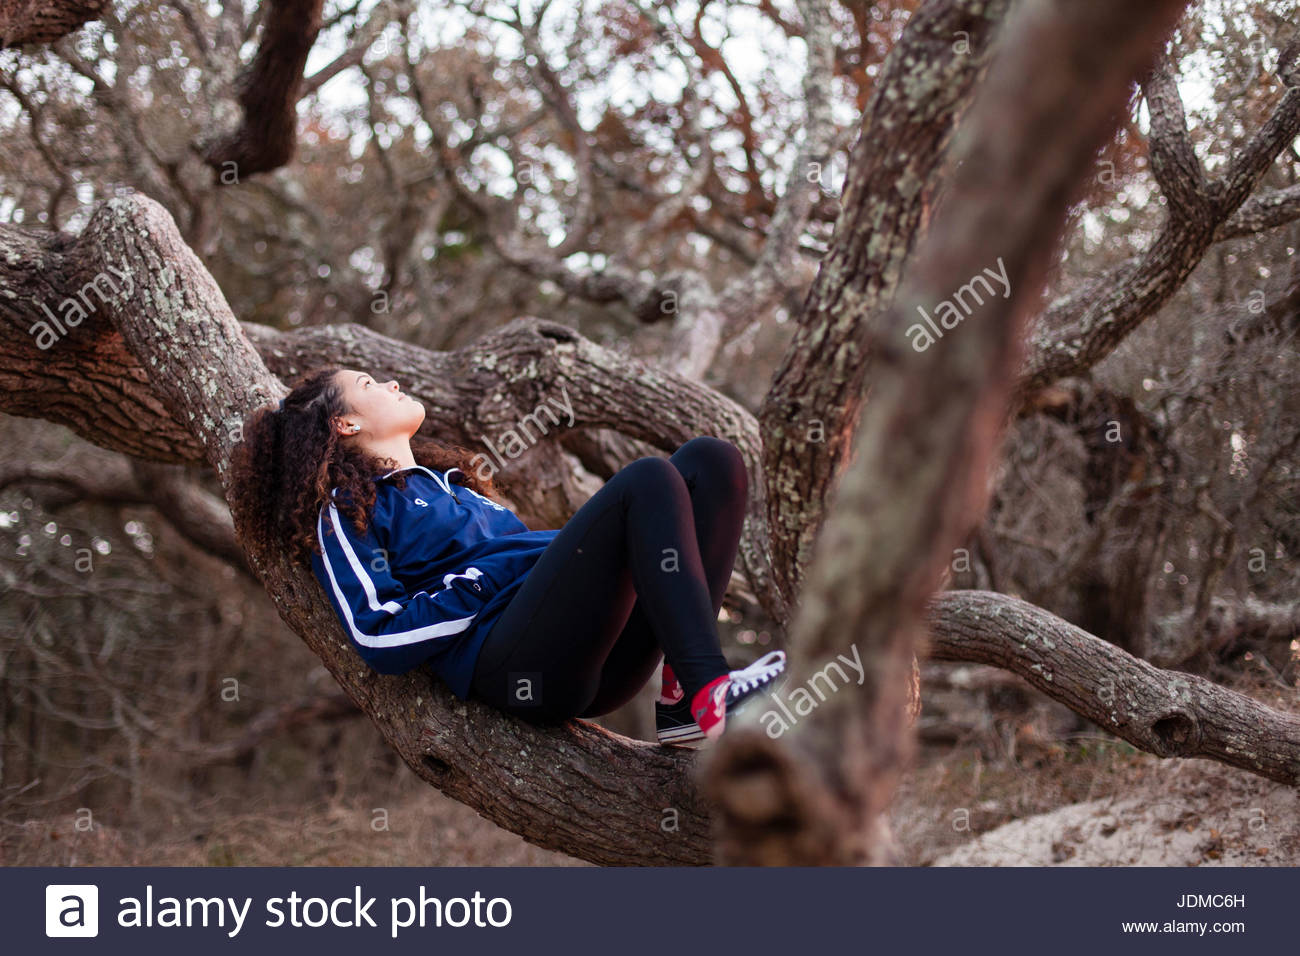 A teenage girl lies in the crook of a large oak tree on Ocracoke Island, North Carolina. - Stock Image